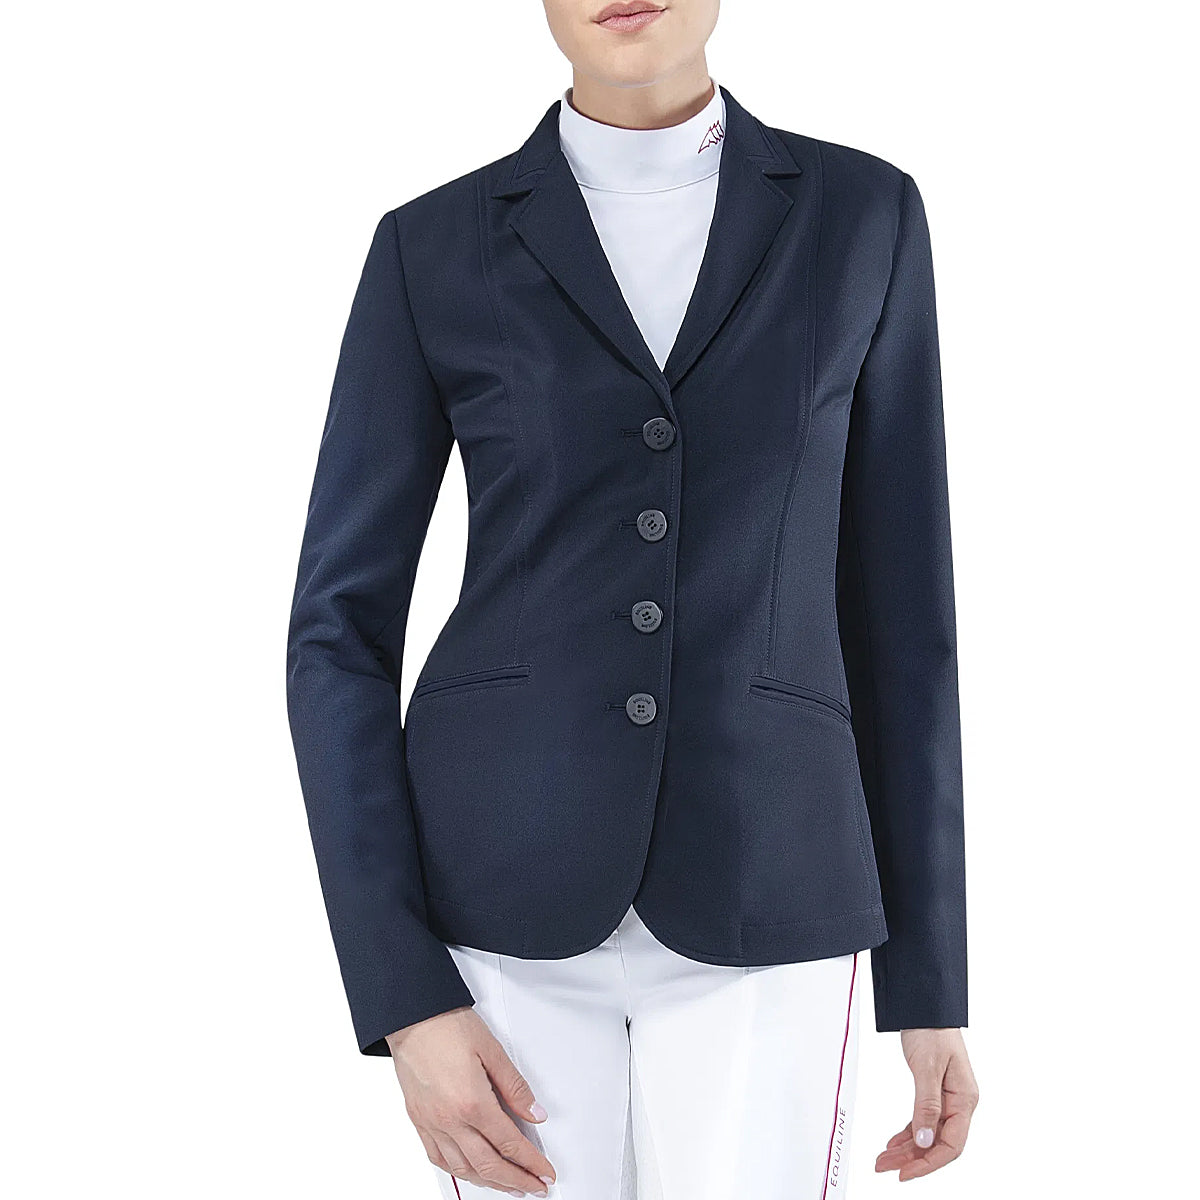 Equiline Chasity Women's Competition Jacket